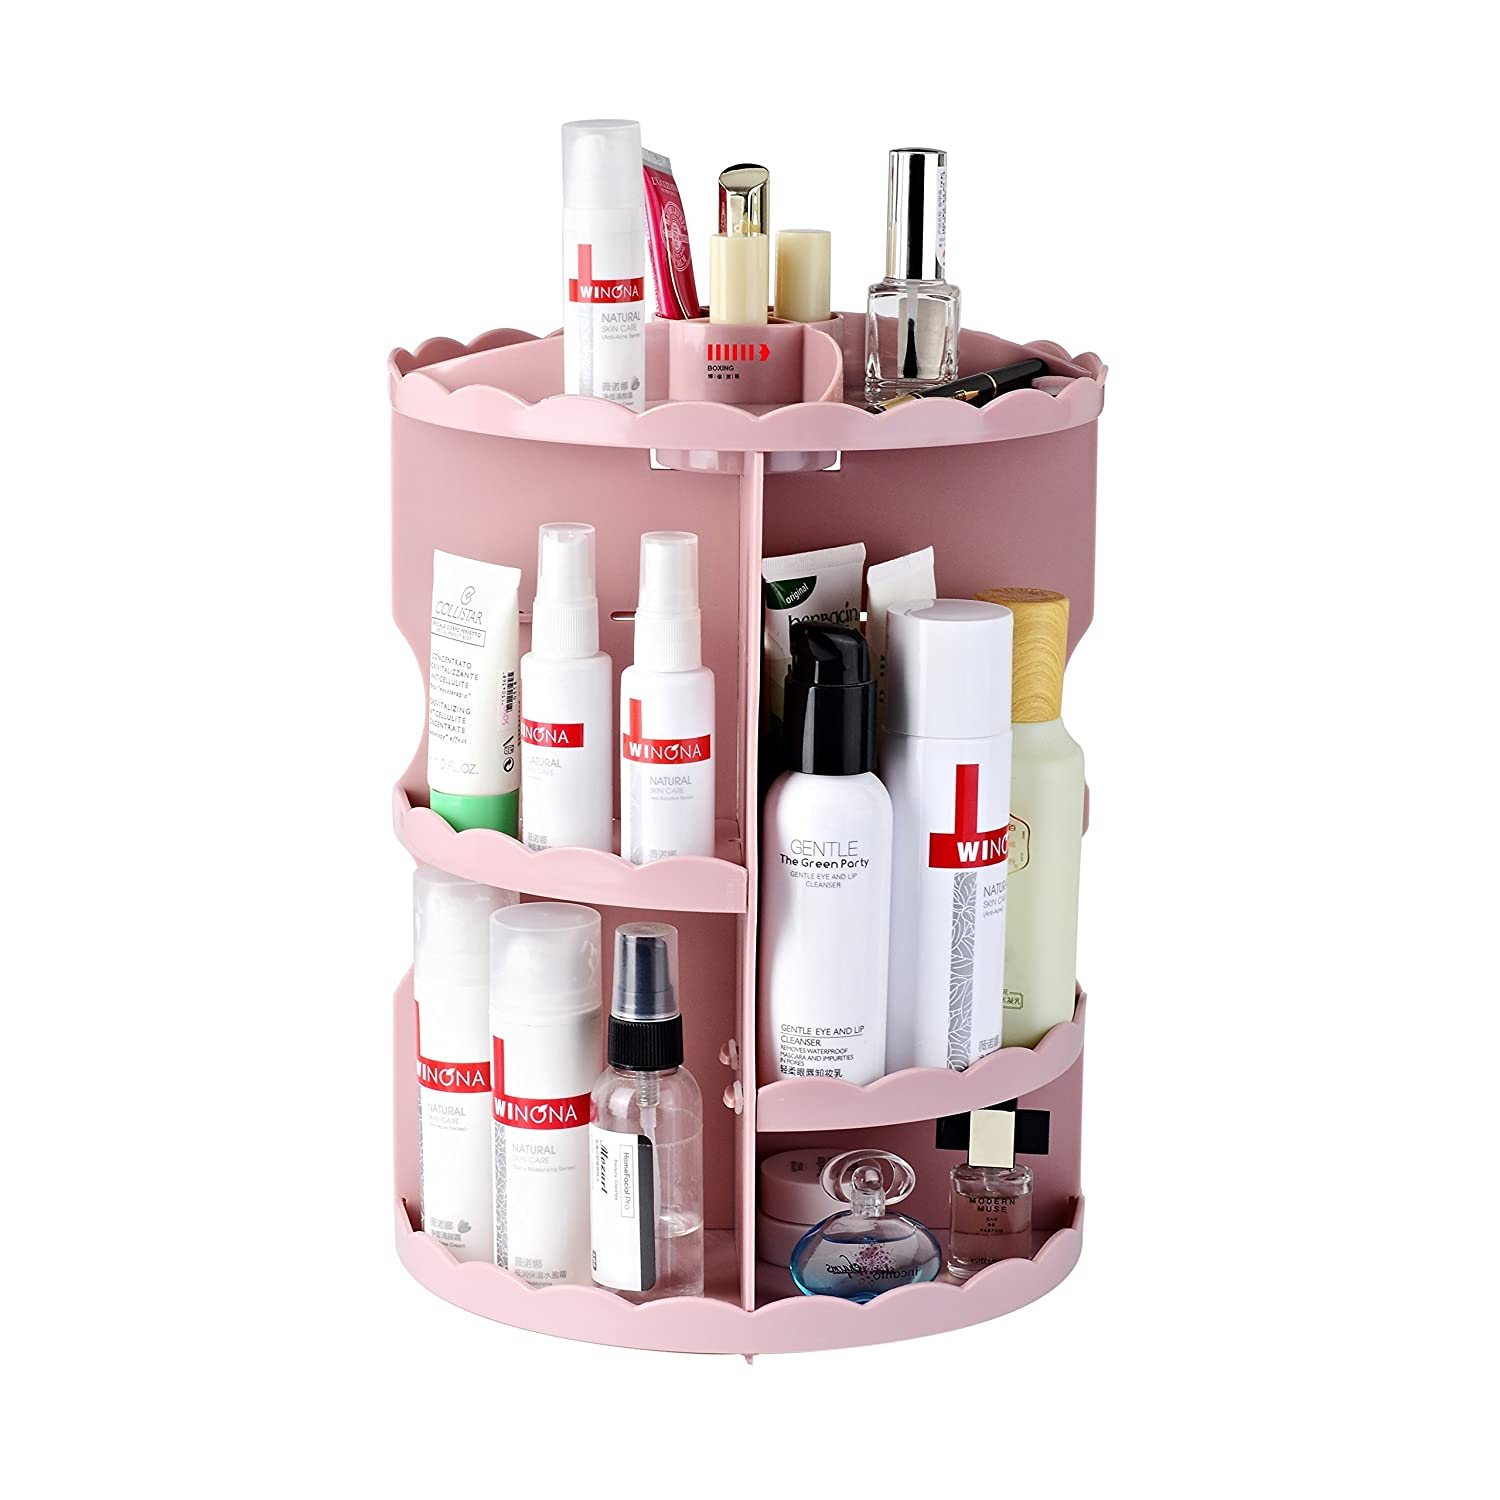 Boxing 360 Rotating Makeup Organizer Fits Cosmetics and Accessories